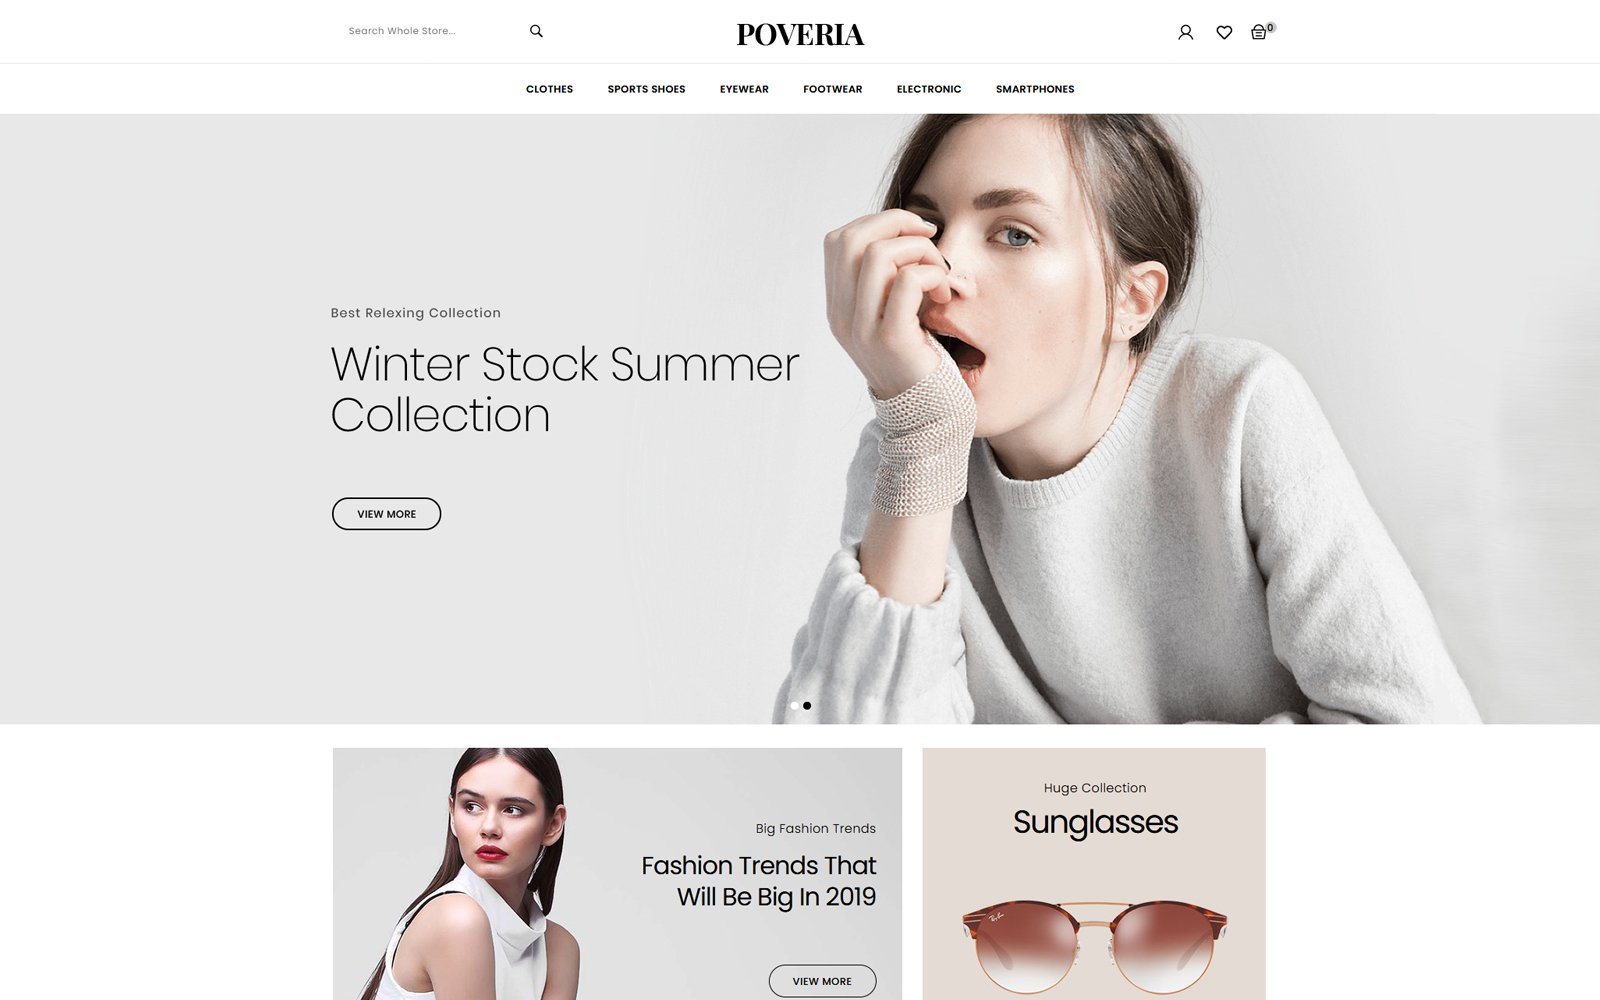 Poveria - Fashion Accessories Stores №146487